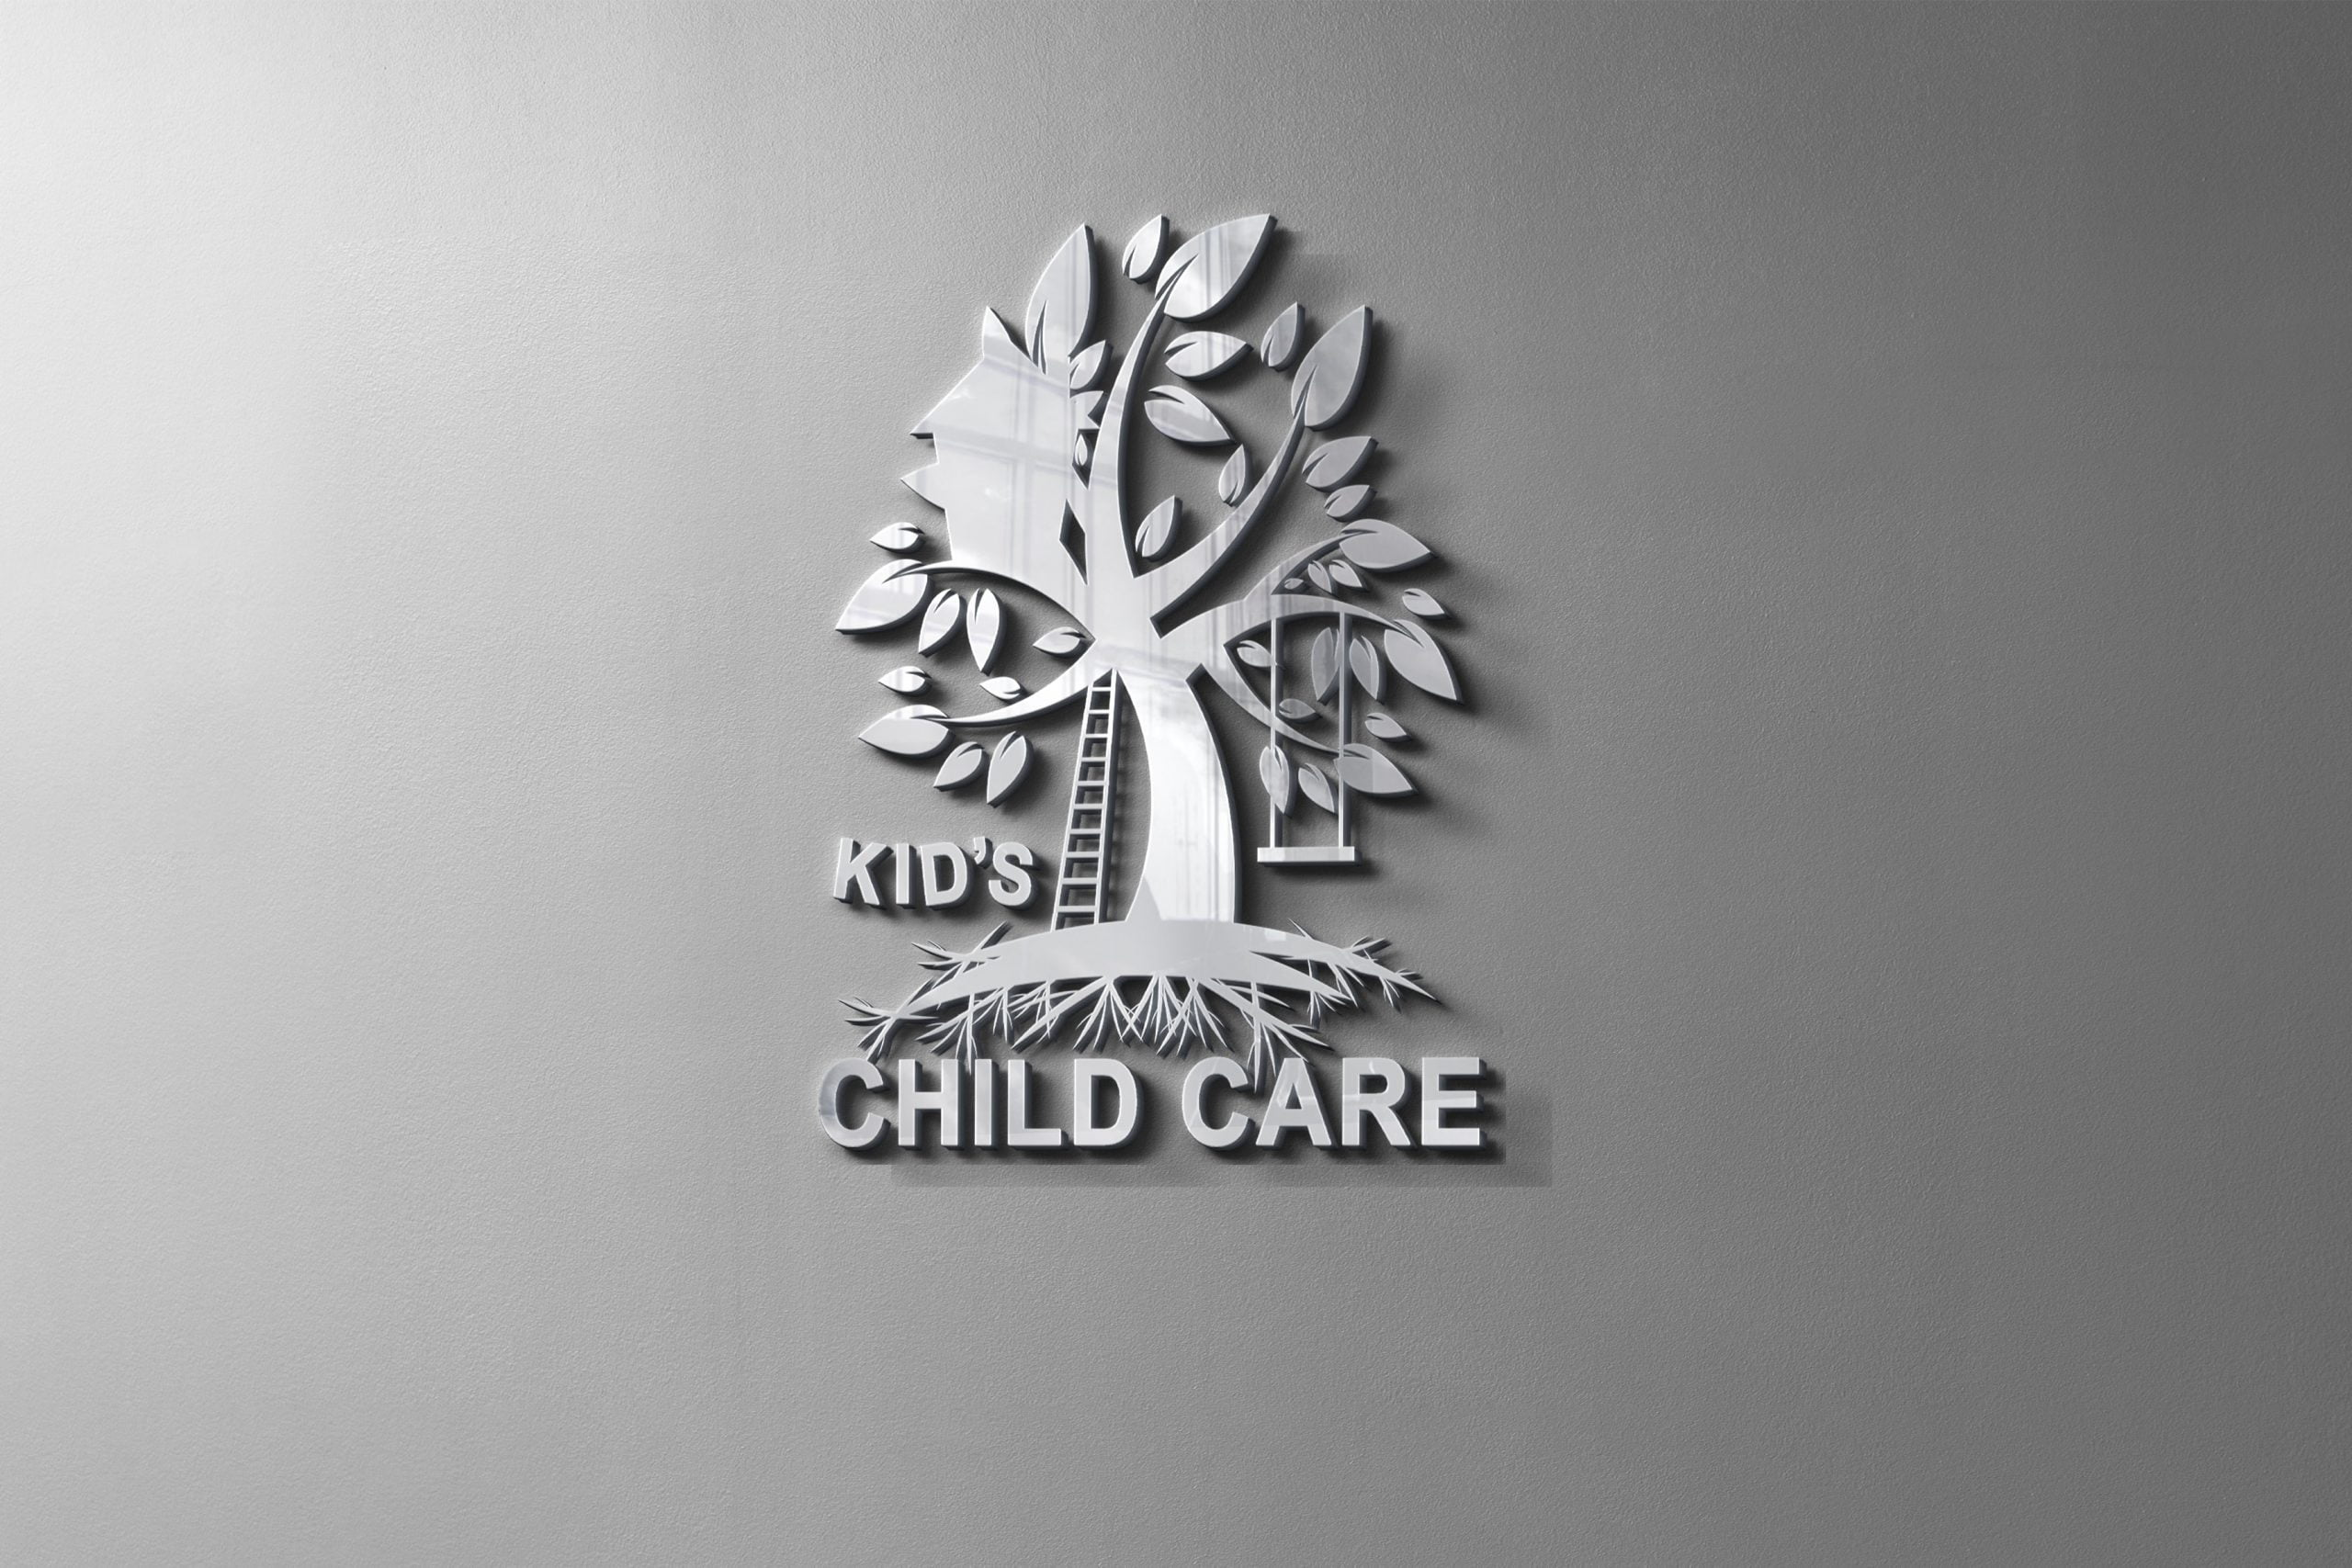 Logo Design for Child Care Company on metal mockup